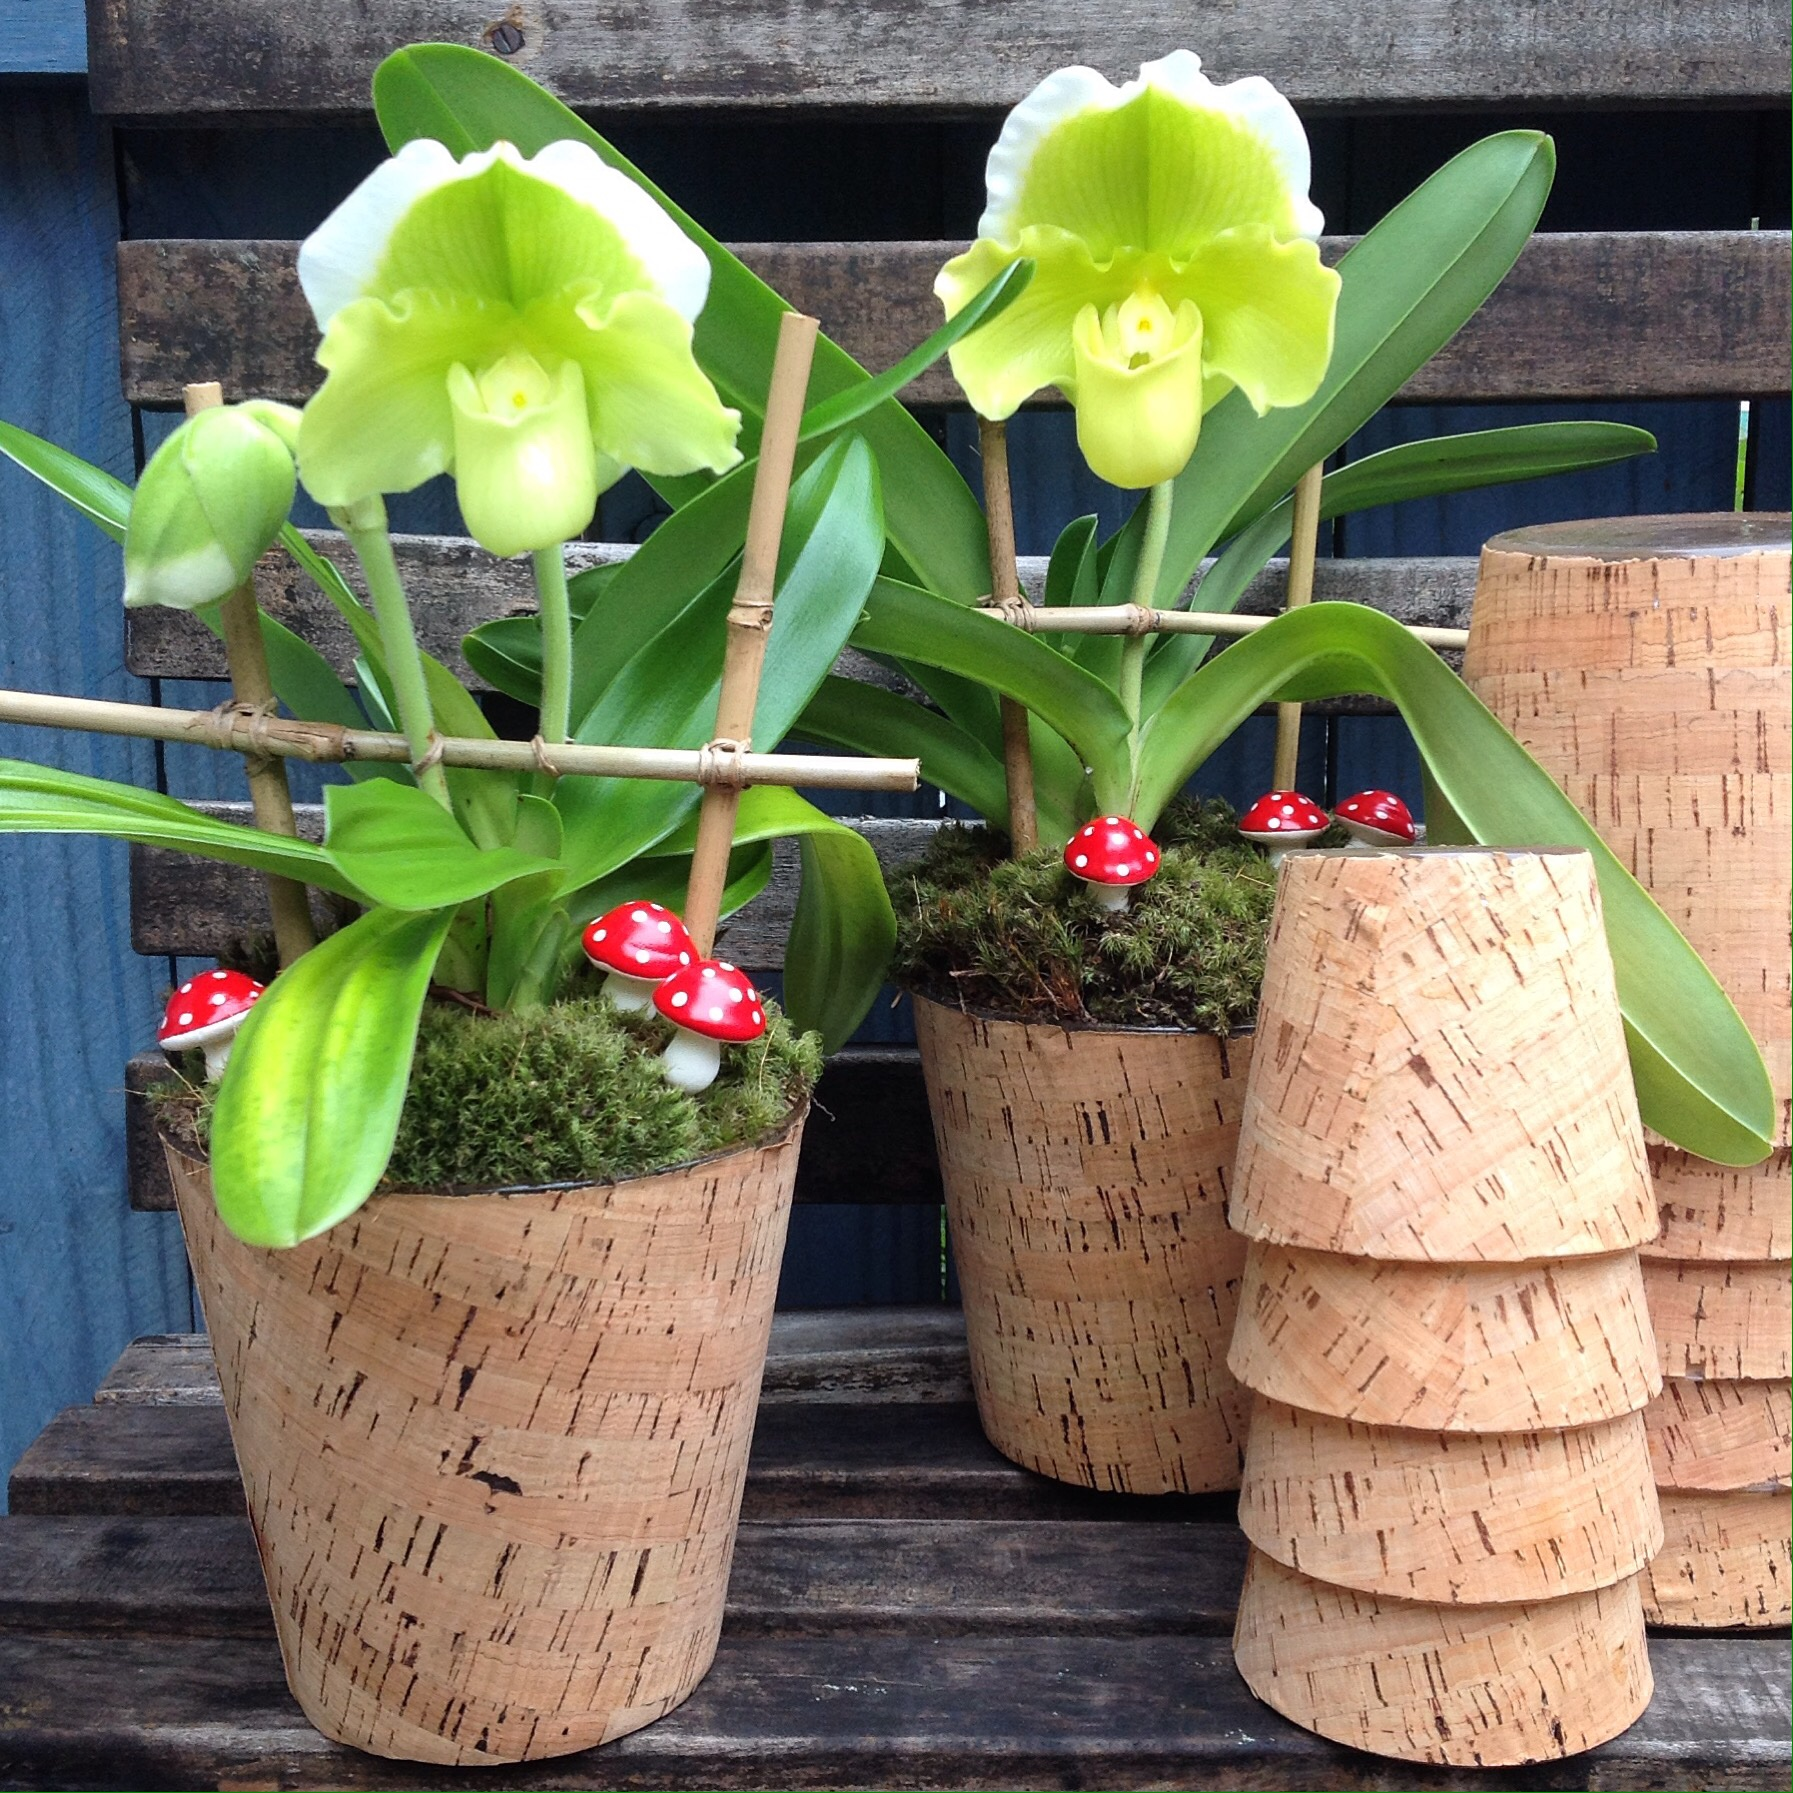 All kinds of unusual orchids starting at $100